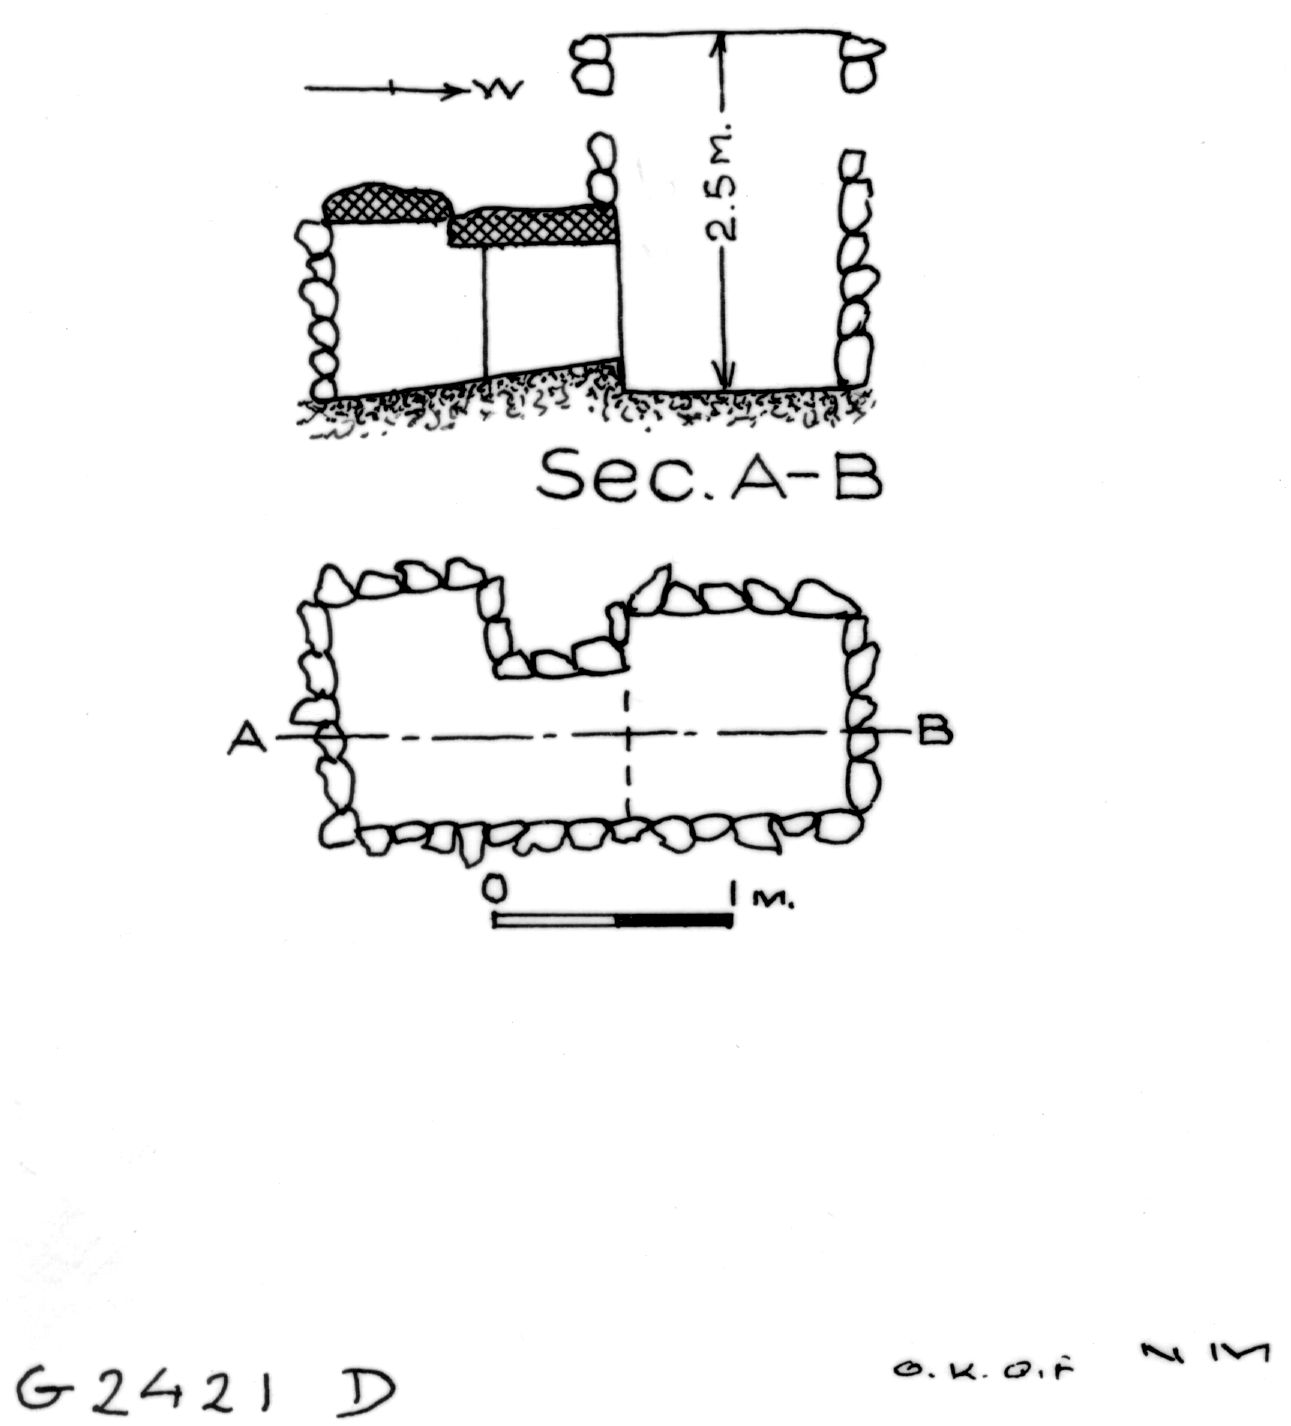 Maps and plans: G 2421, Shaft D